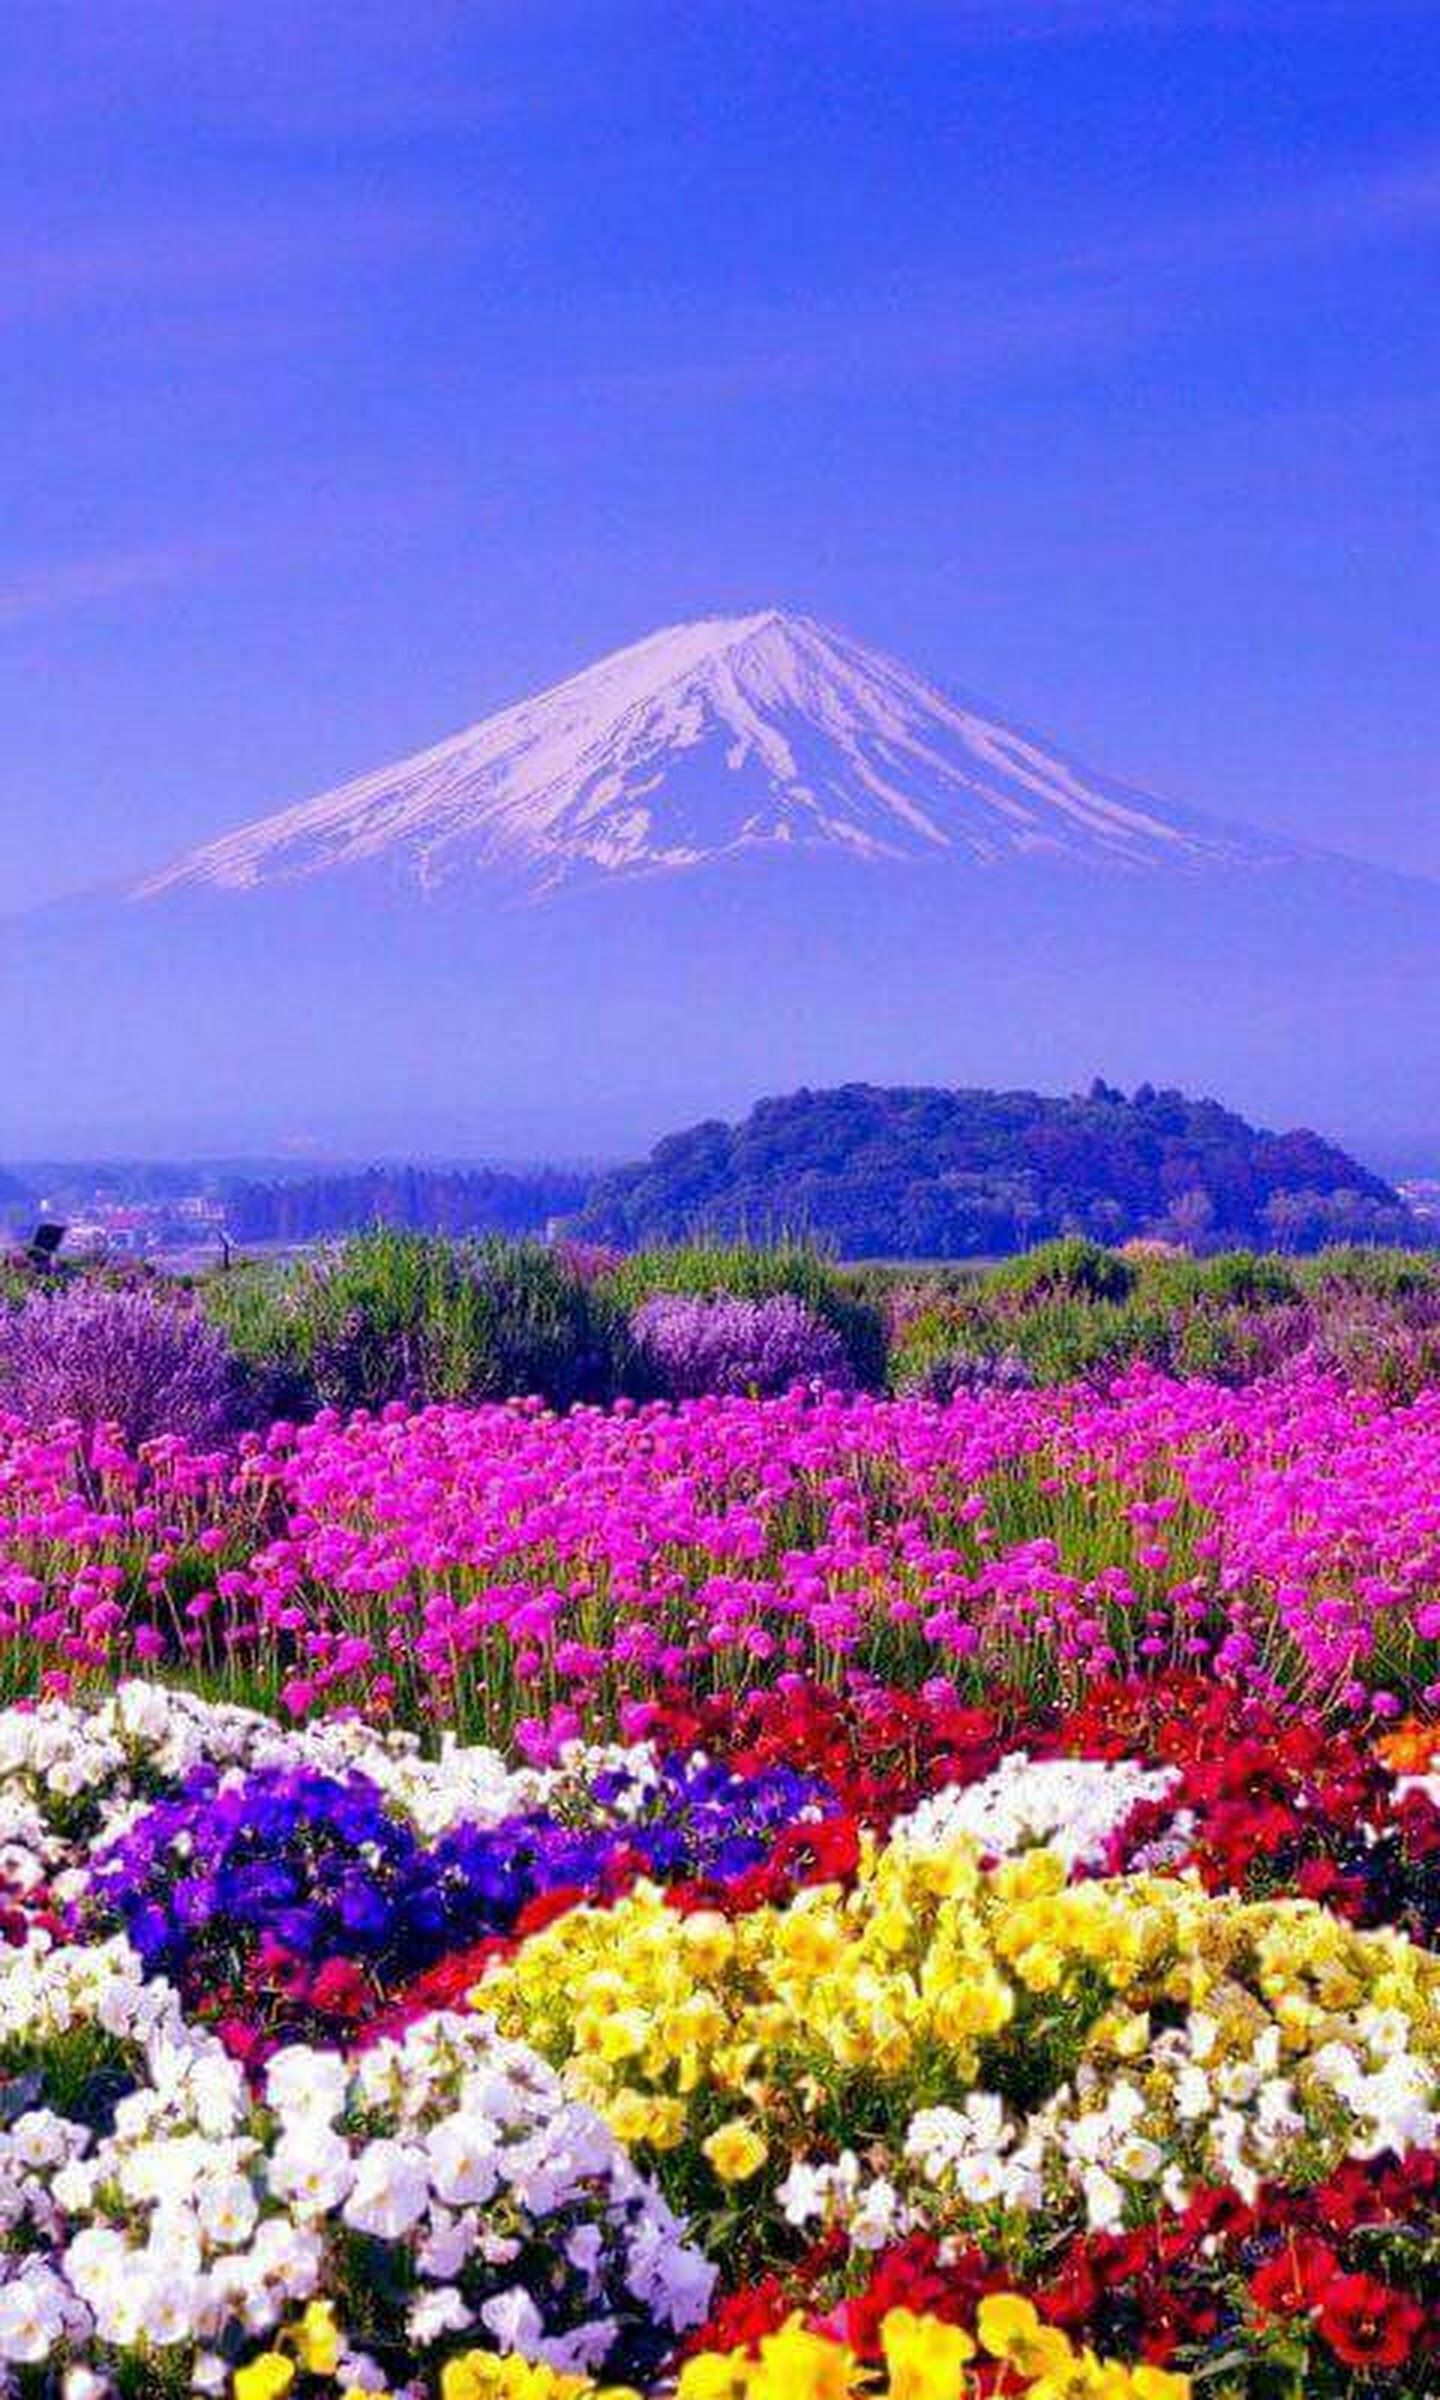 The beauty in colourful of flowers garden with a great view of fuji the beauty in colourful of flowers garden with a great view of fuji mountain background of japan halimah nur google izmirmasajfo